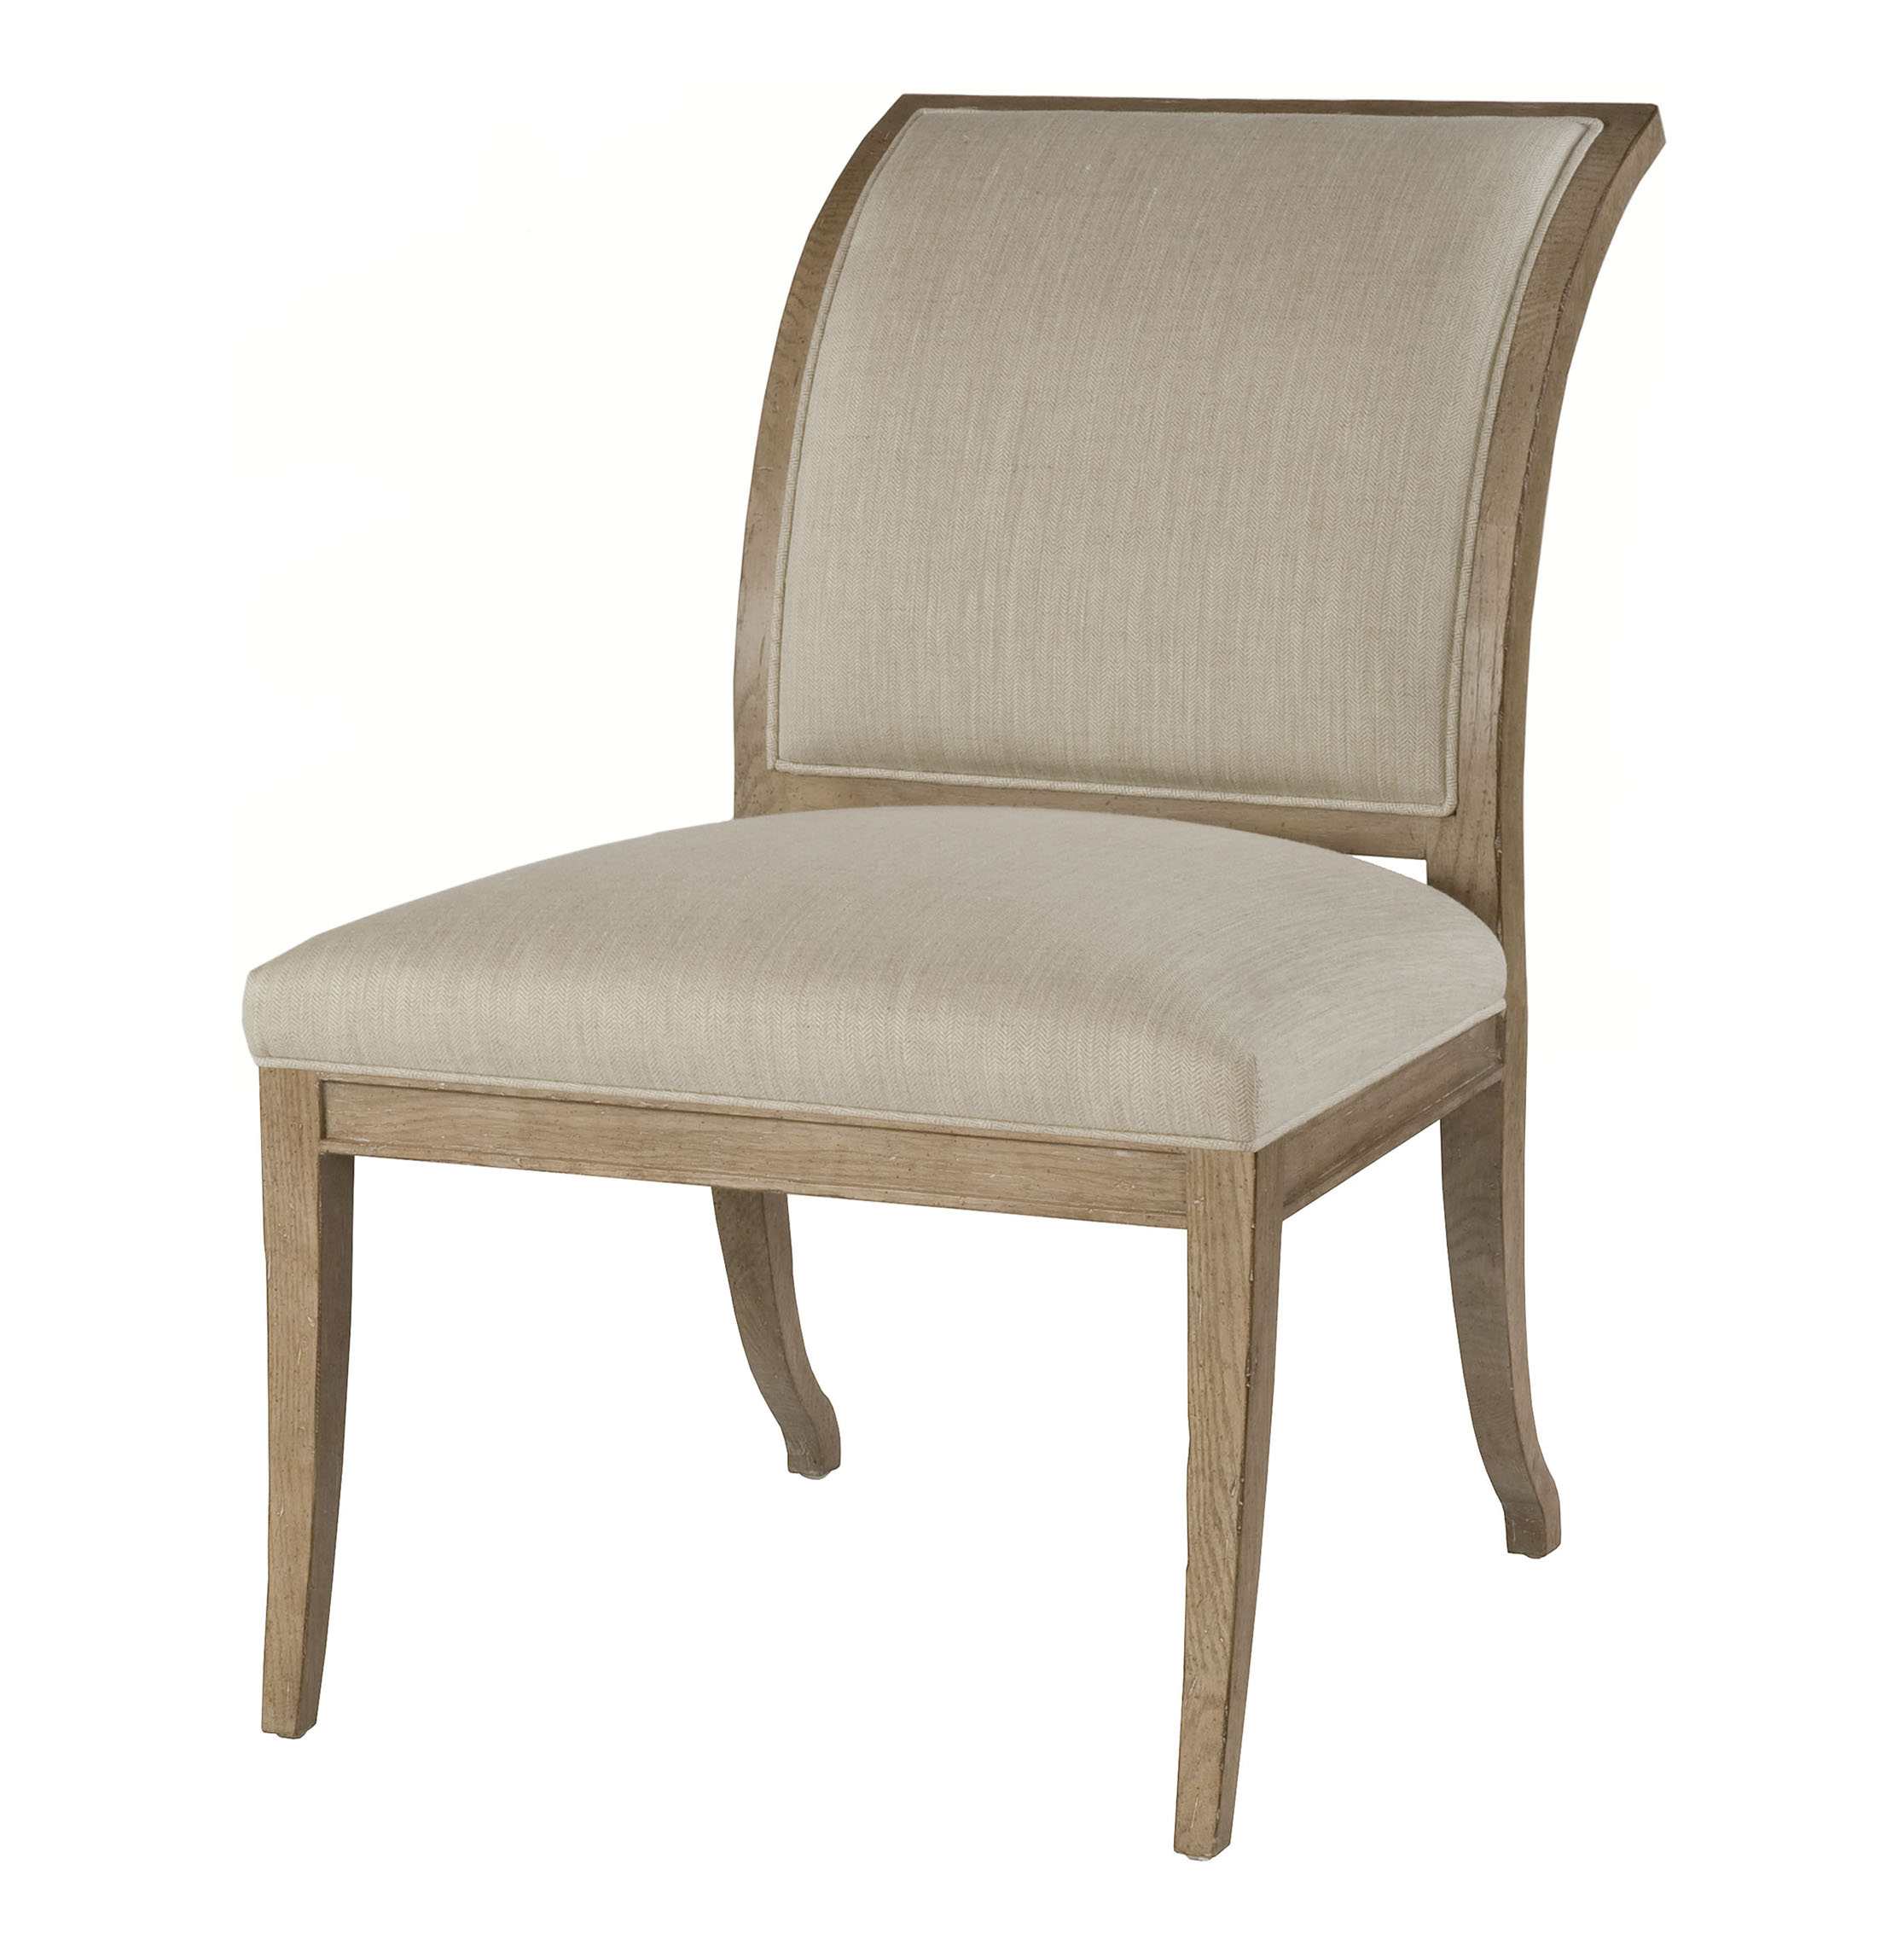 furniture dining room furniture chair side chair natural linen